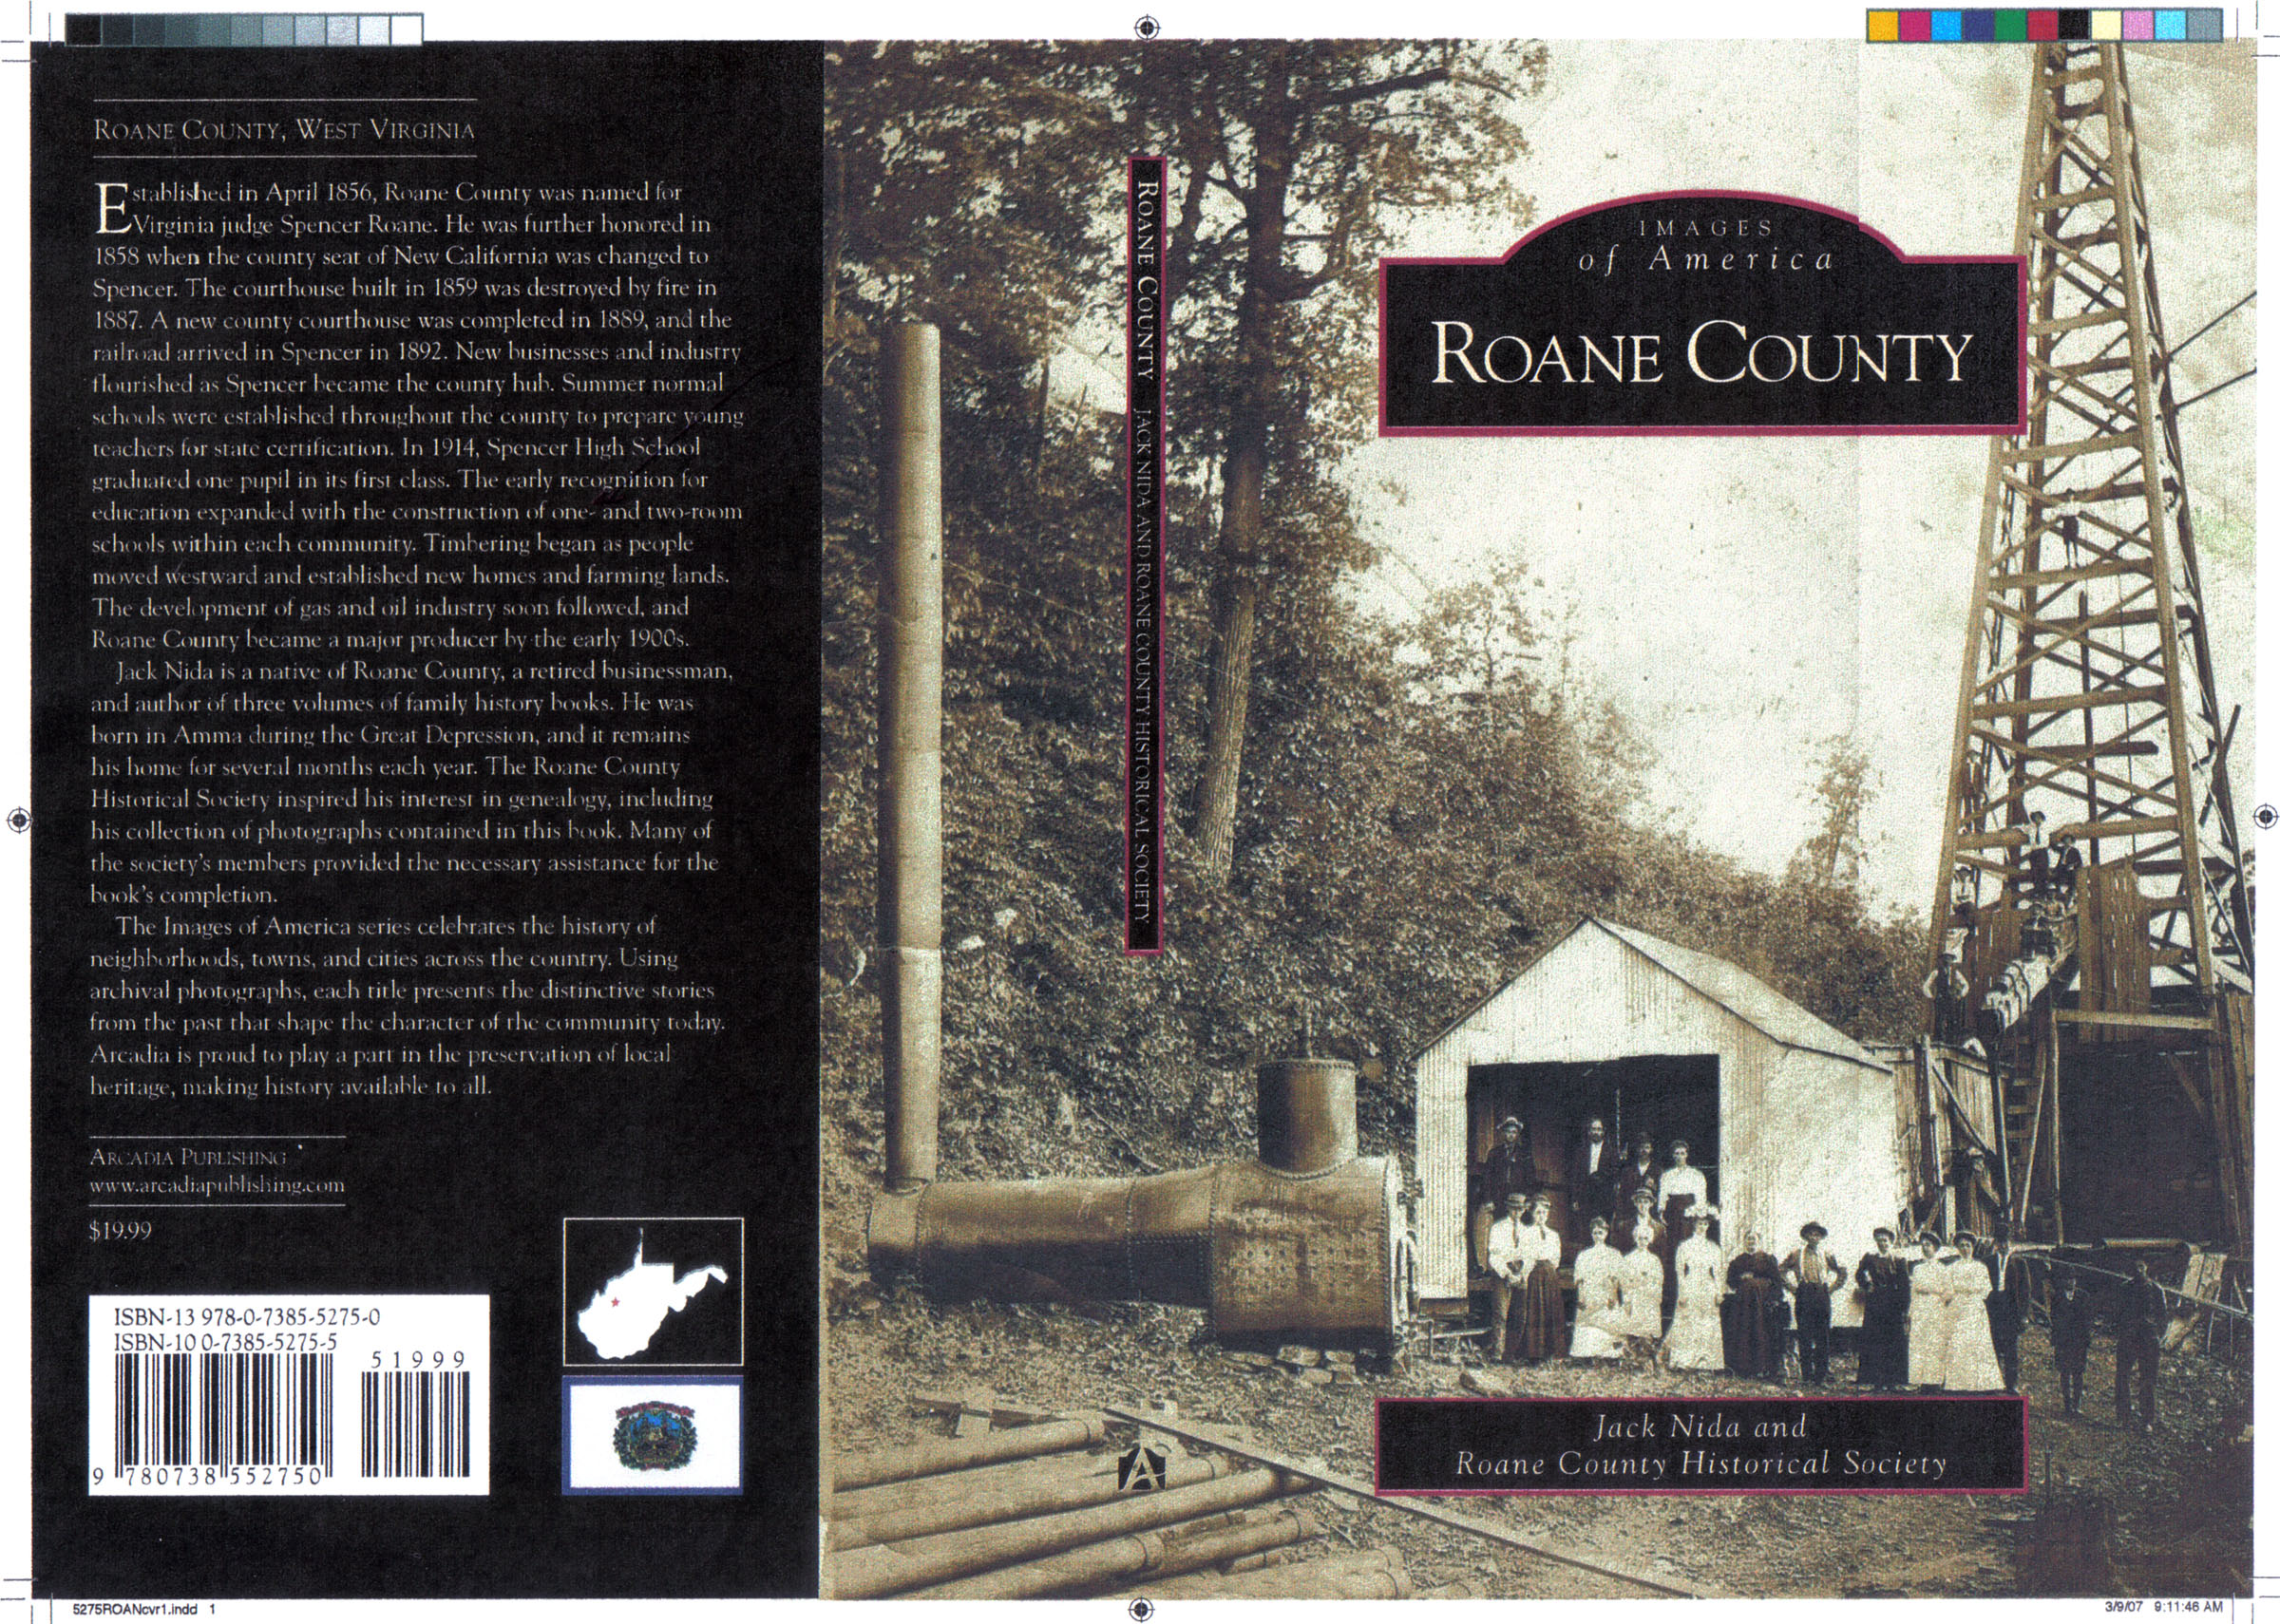 IMAGES OF ROANE COUNTY - now available